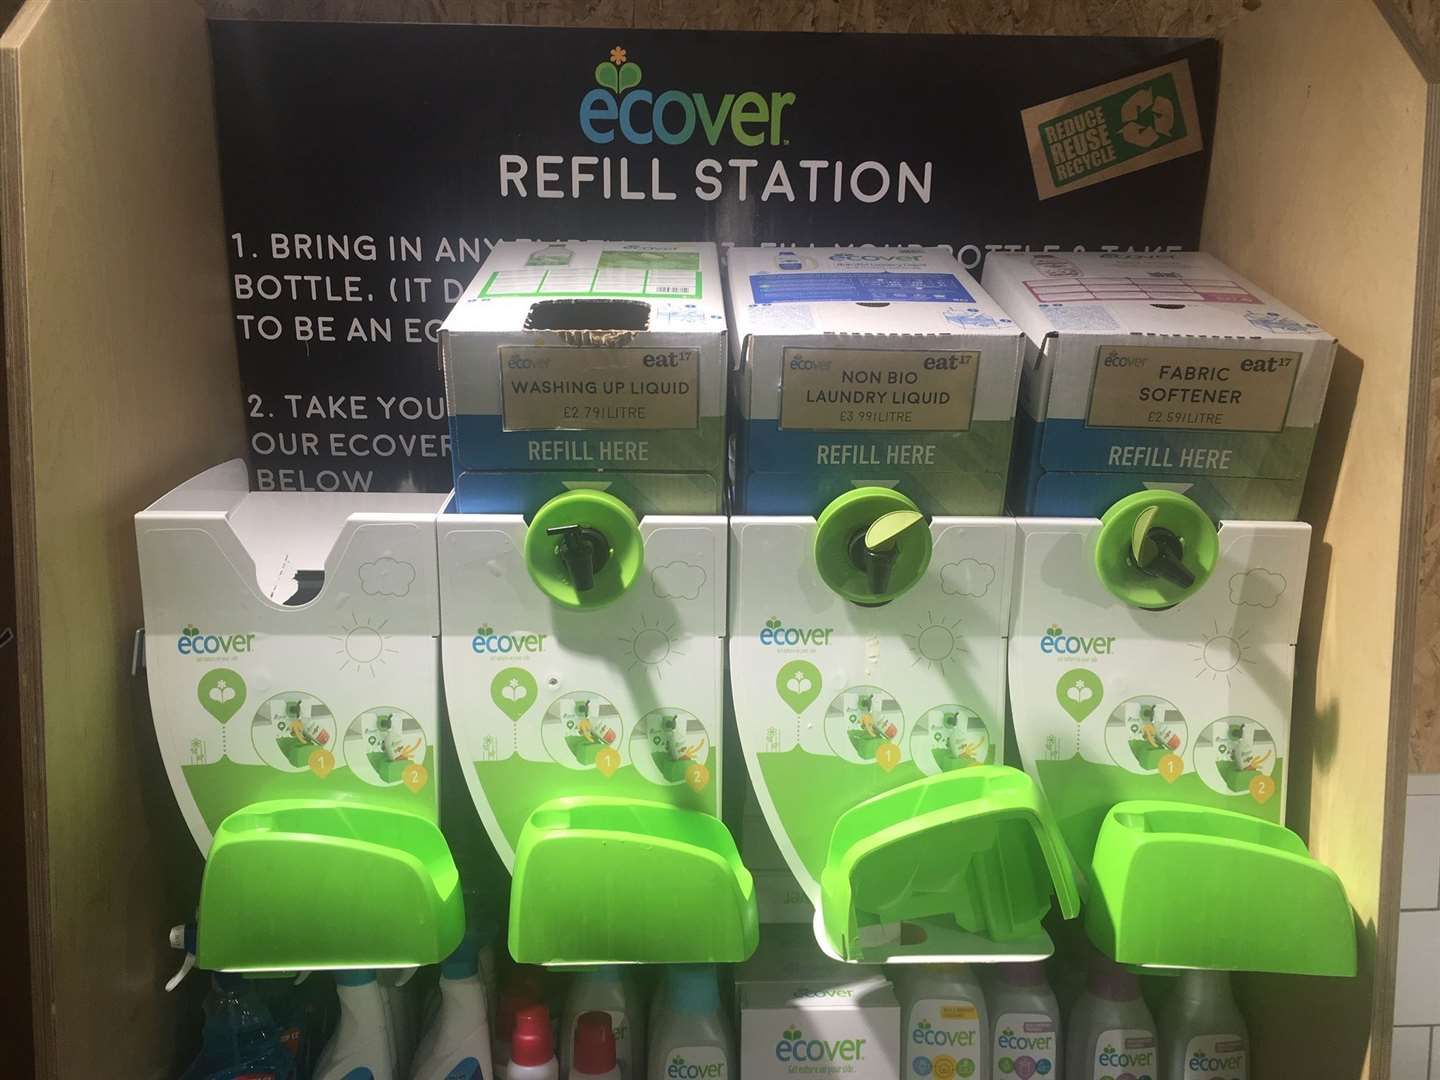 Shoppers can refill their containers for washing-up liquid, non bio laundry liquid and fabric softener (14396429)